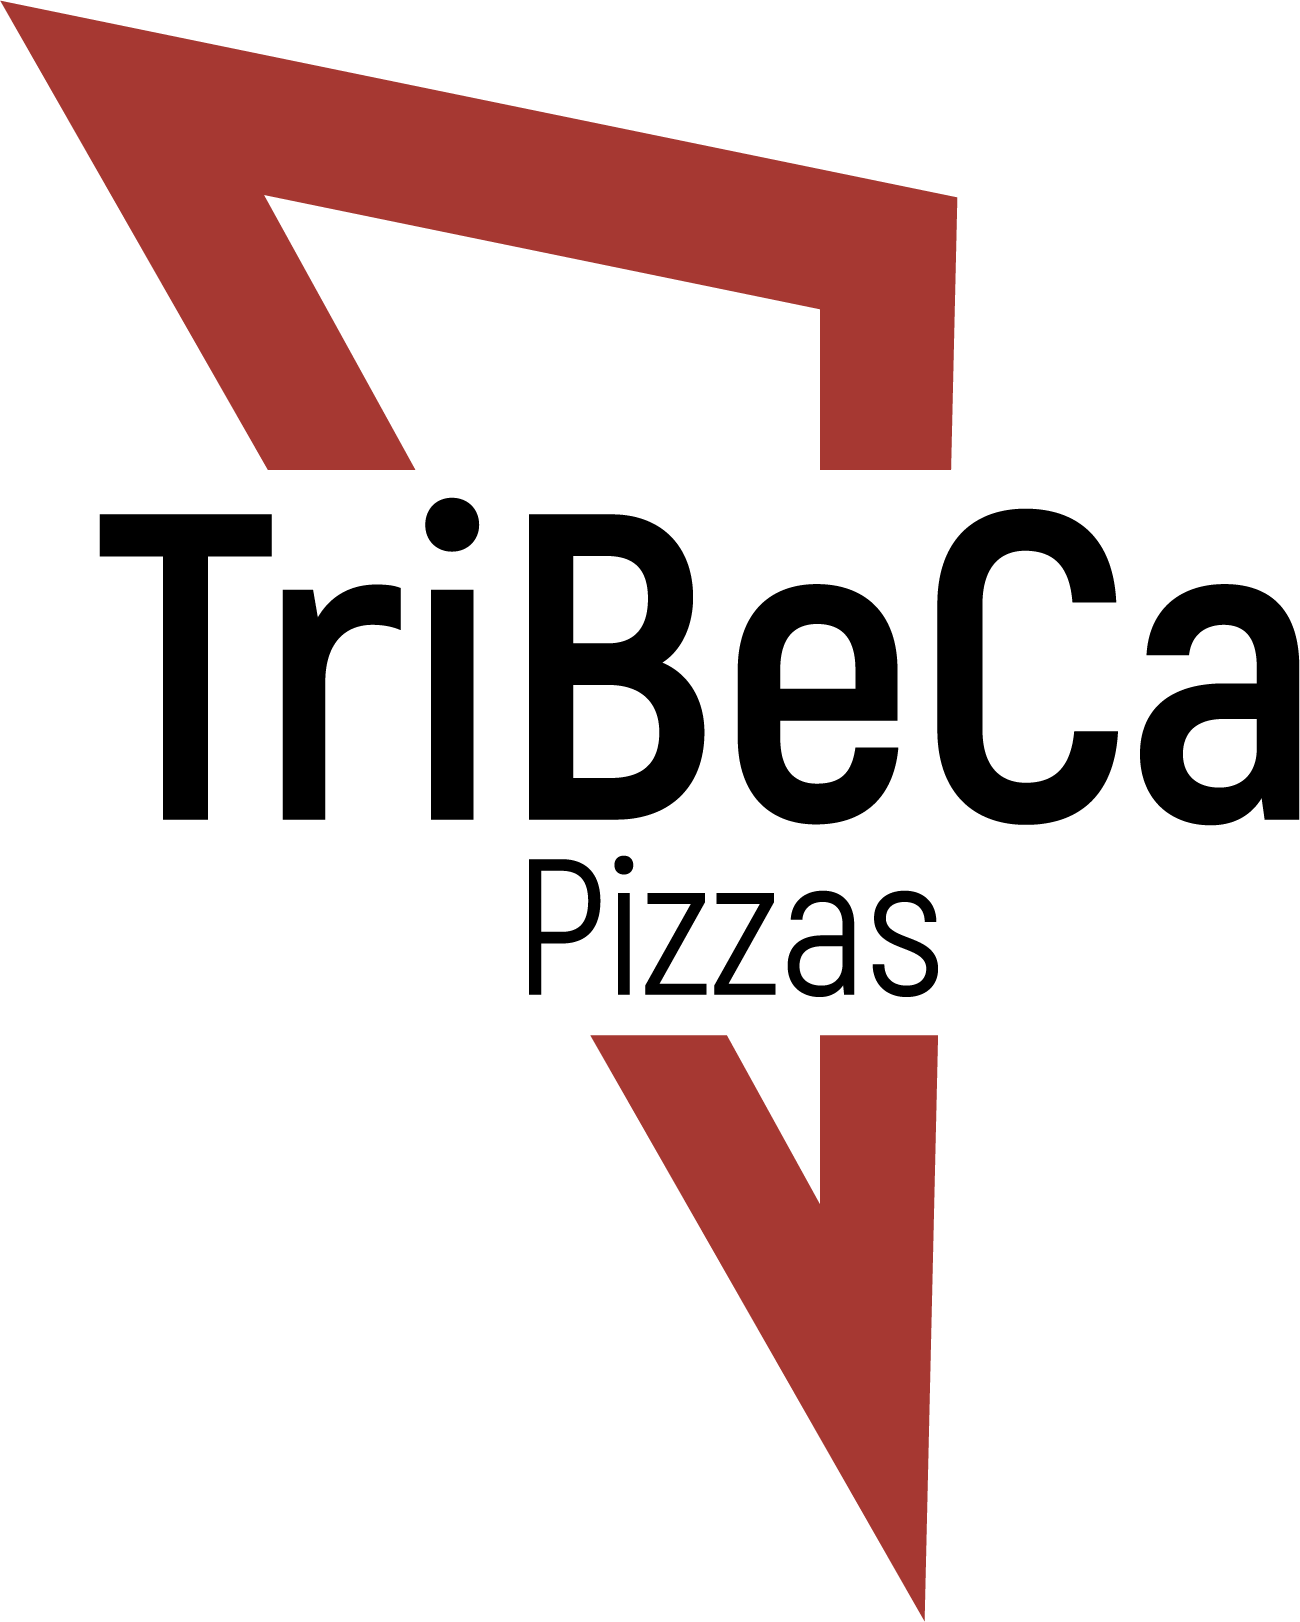 Logo-Pizzaria - Tribeca Pizzas